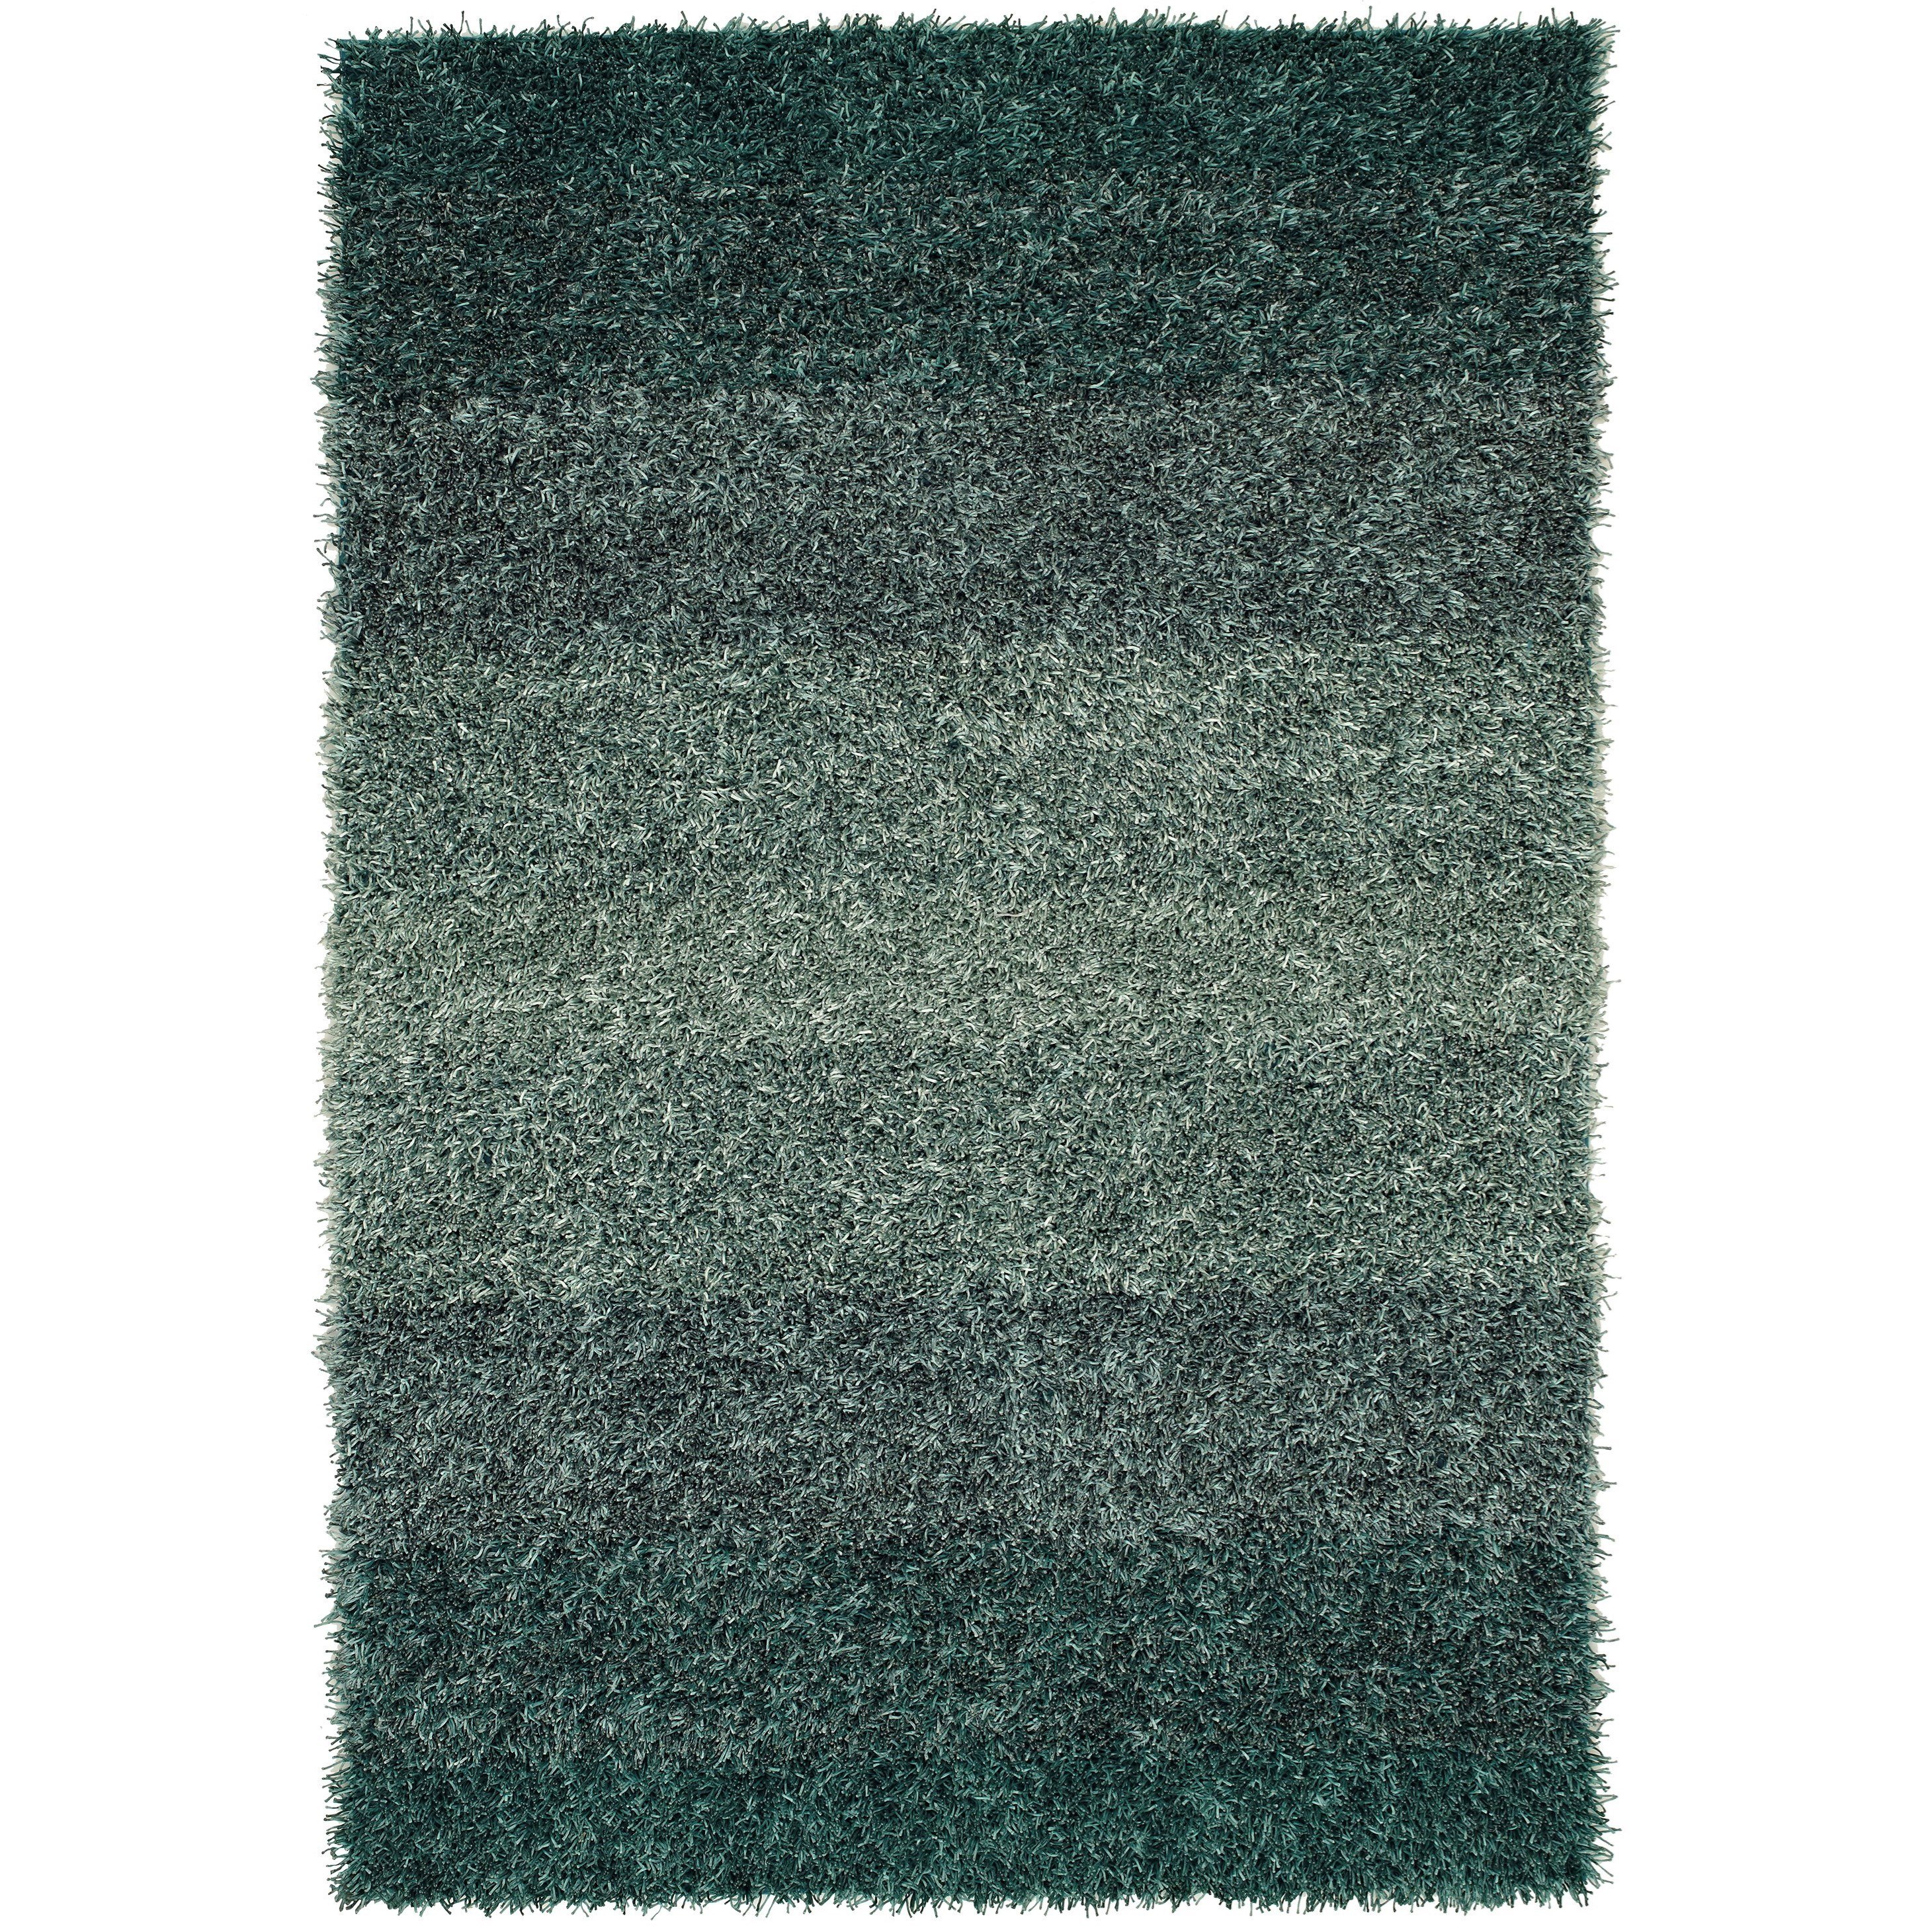 Spectrum Teal 9'X13' Rug by Dalyn at Fashion Furniture